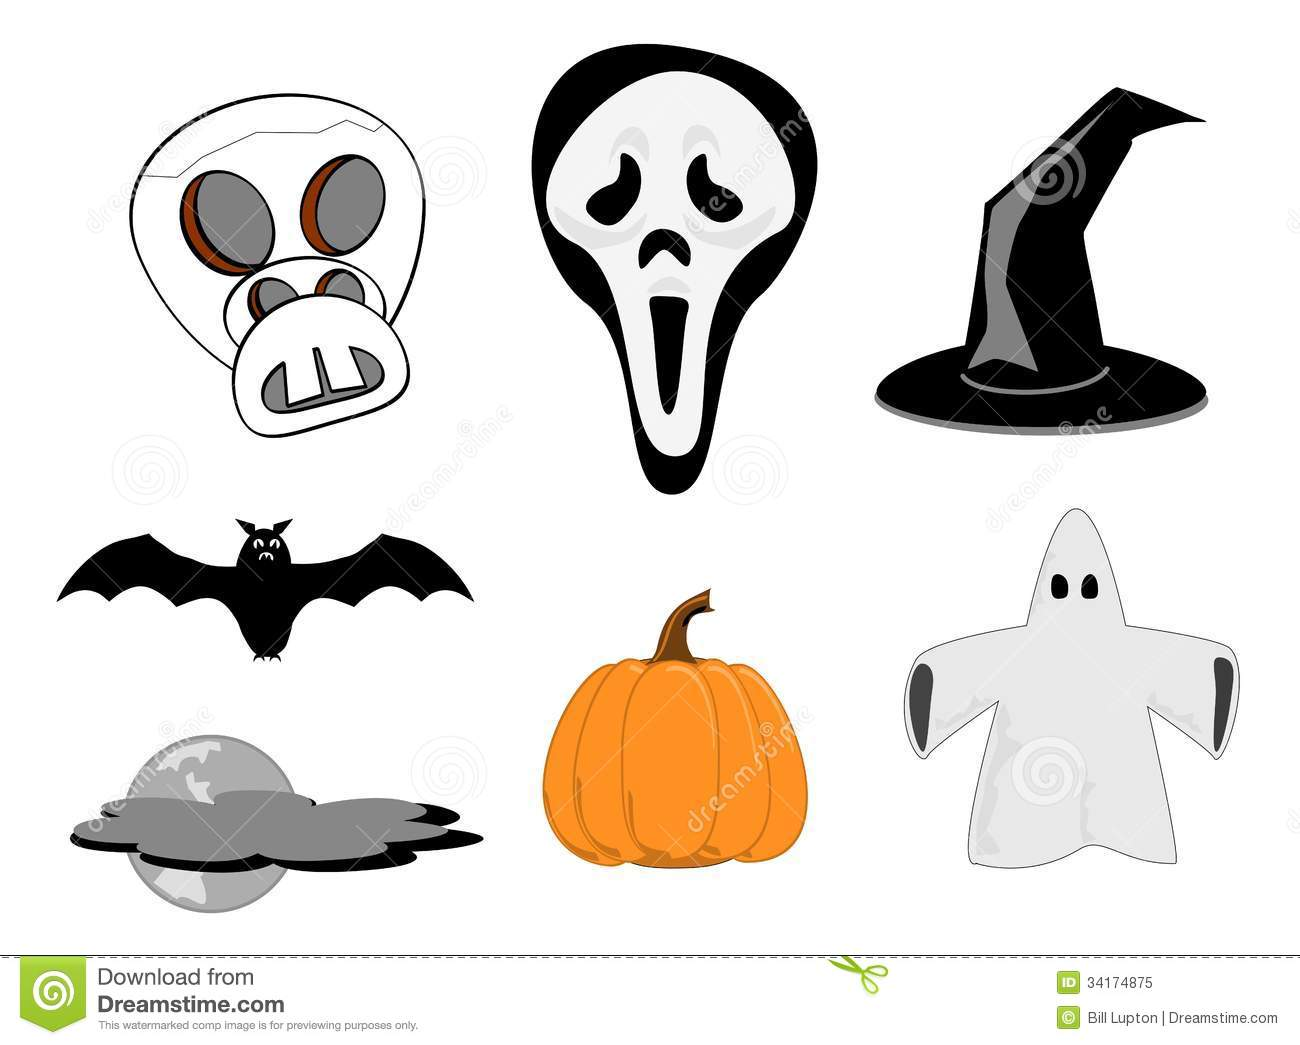 Cute Halloween Ghost Clip Art | Clipart Panda - Free Clipart Images